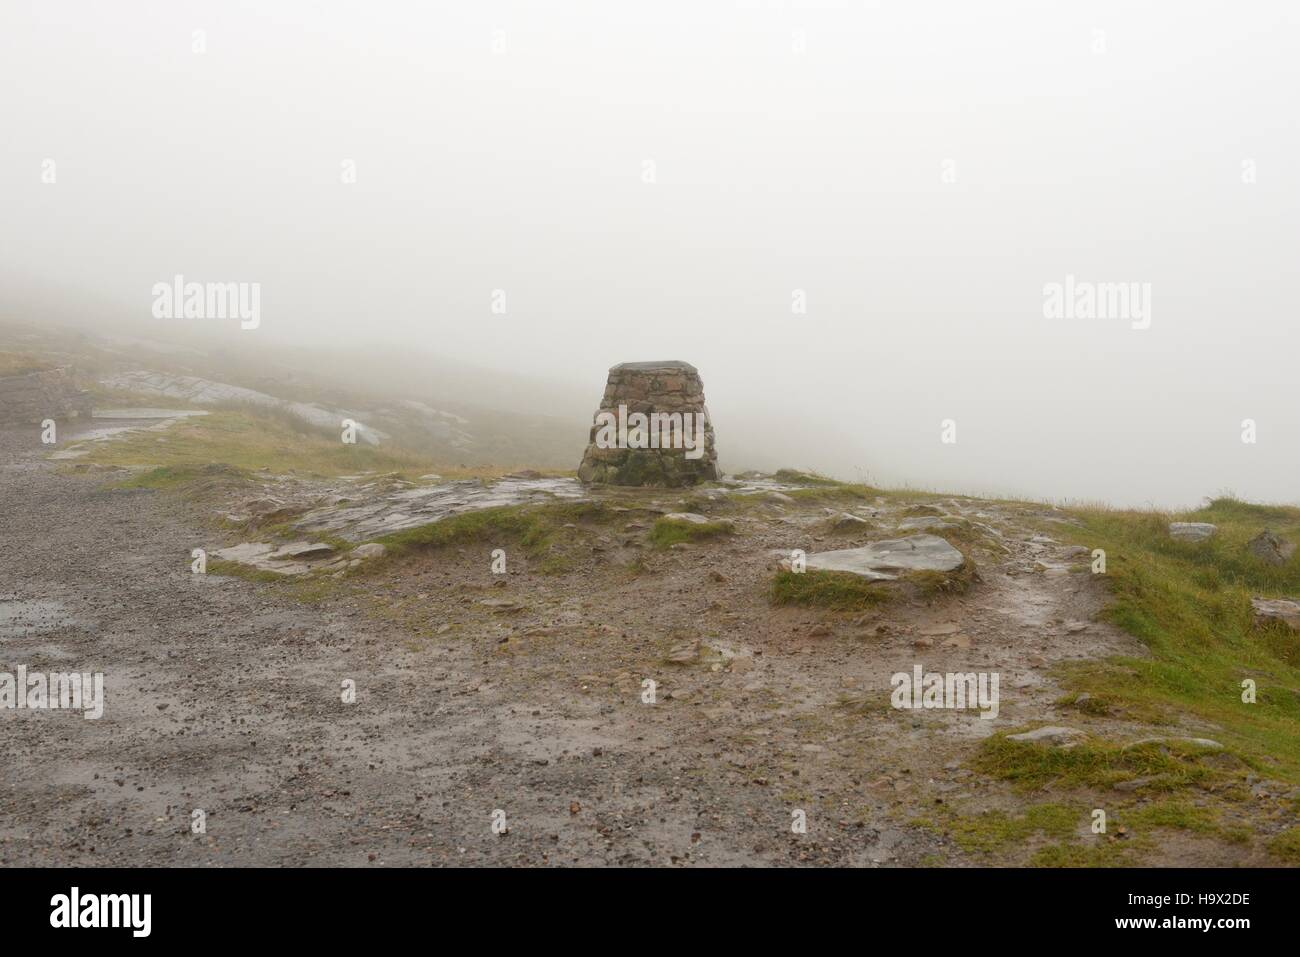 The Bealach na Ba (Pass of the cattle) viewpoint enshrouded in mist on the Applecross peninsula, Highland, Scotland. - Stock Image